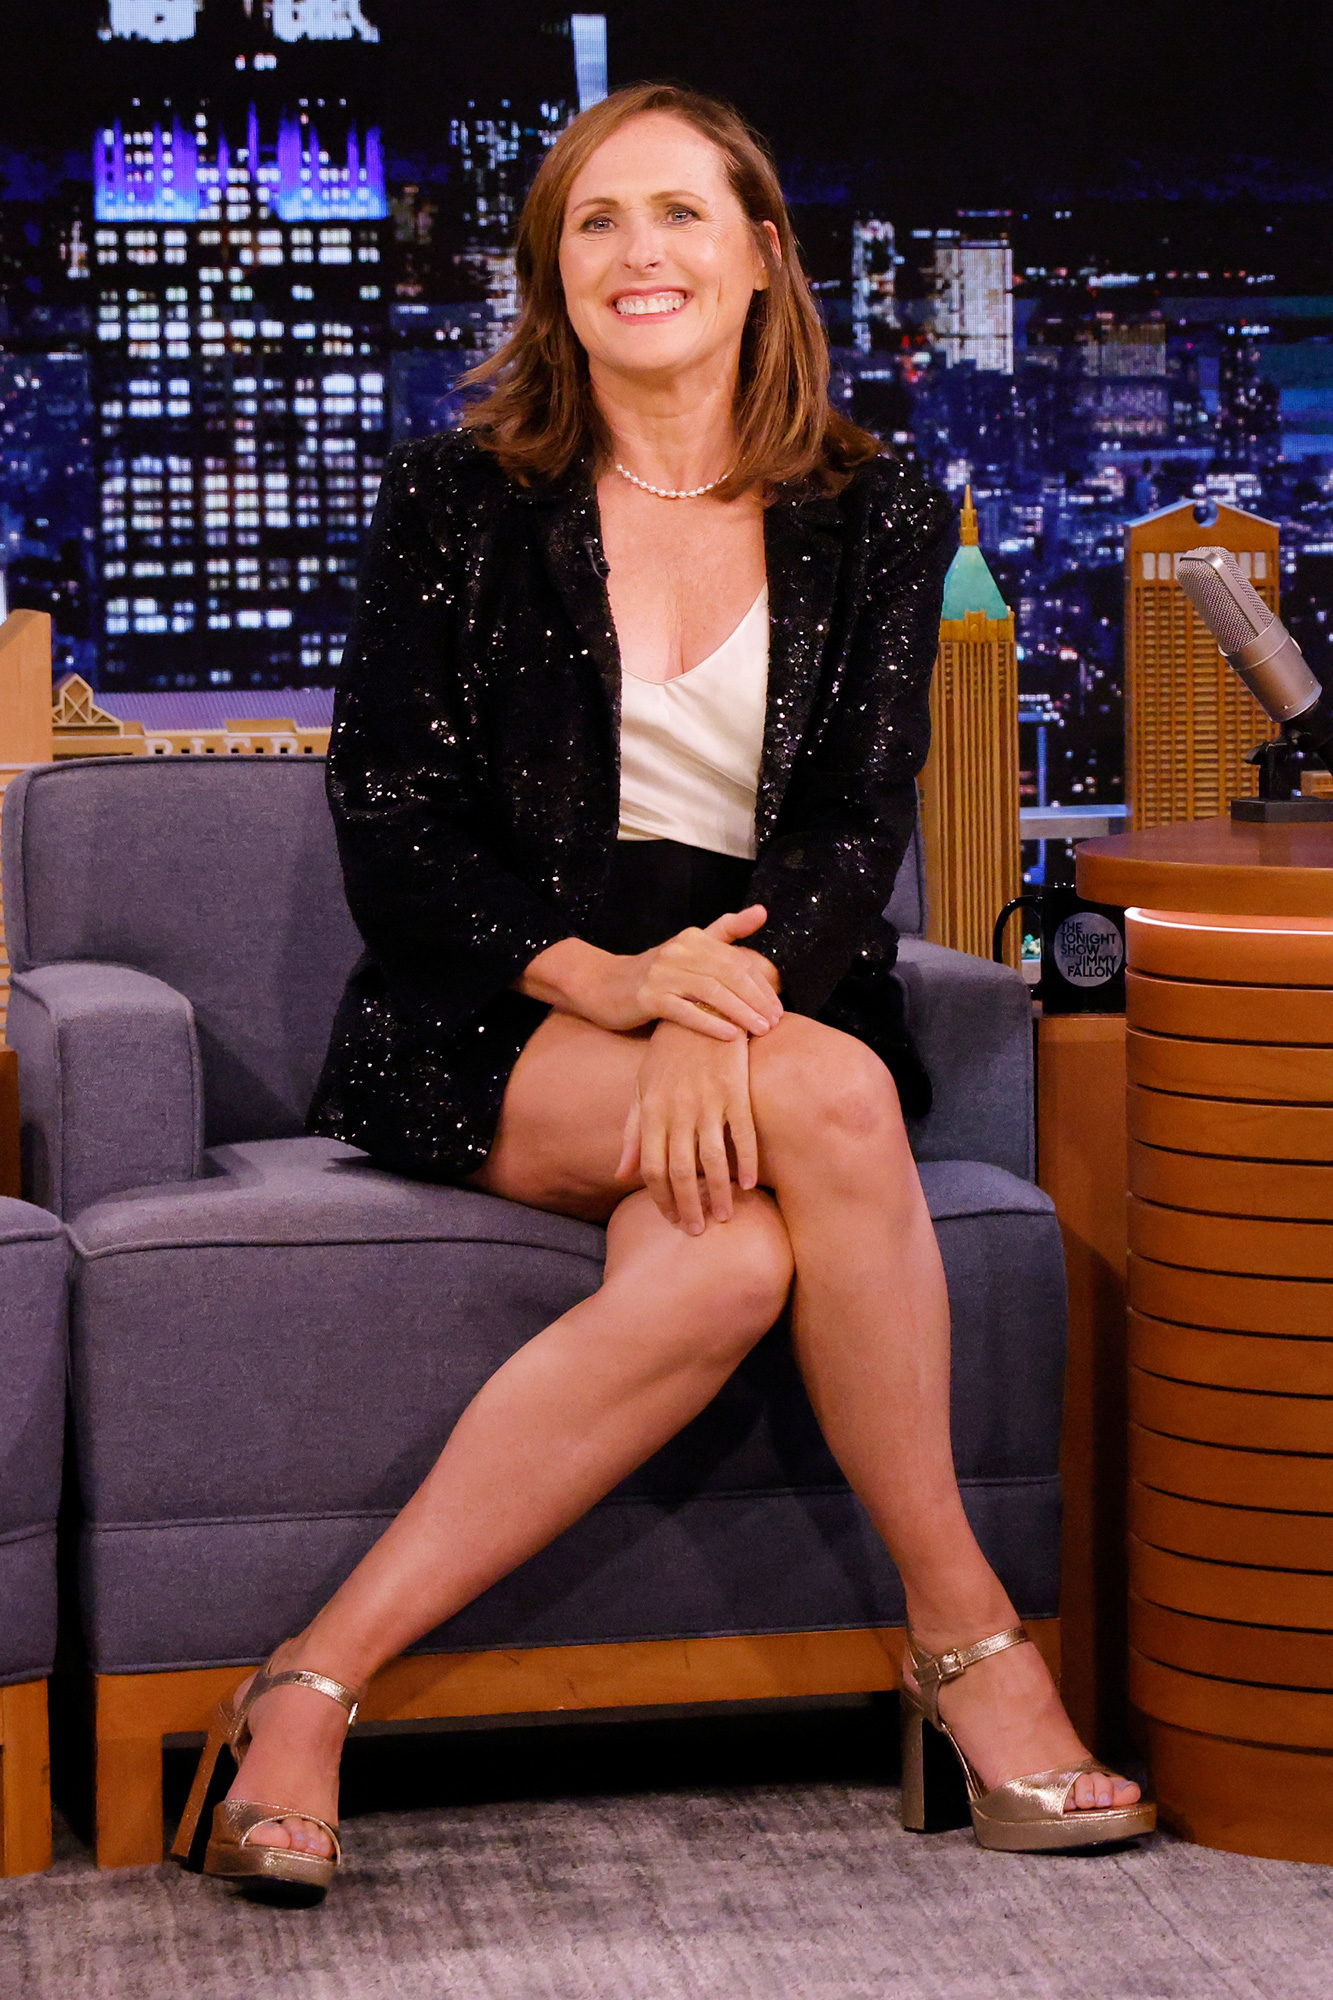 THE TONIGHT SHOW STARRING JIMMY FALLON -- Episode 1507 -- Pictured: Actress Molly Shannon during an interview on Wednesday, August 25, 2021